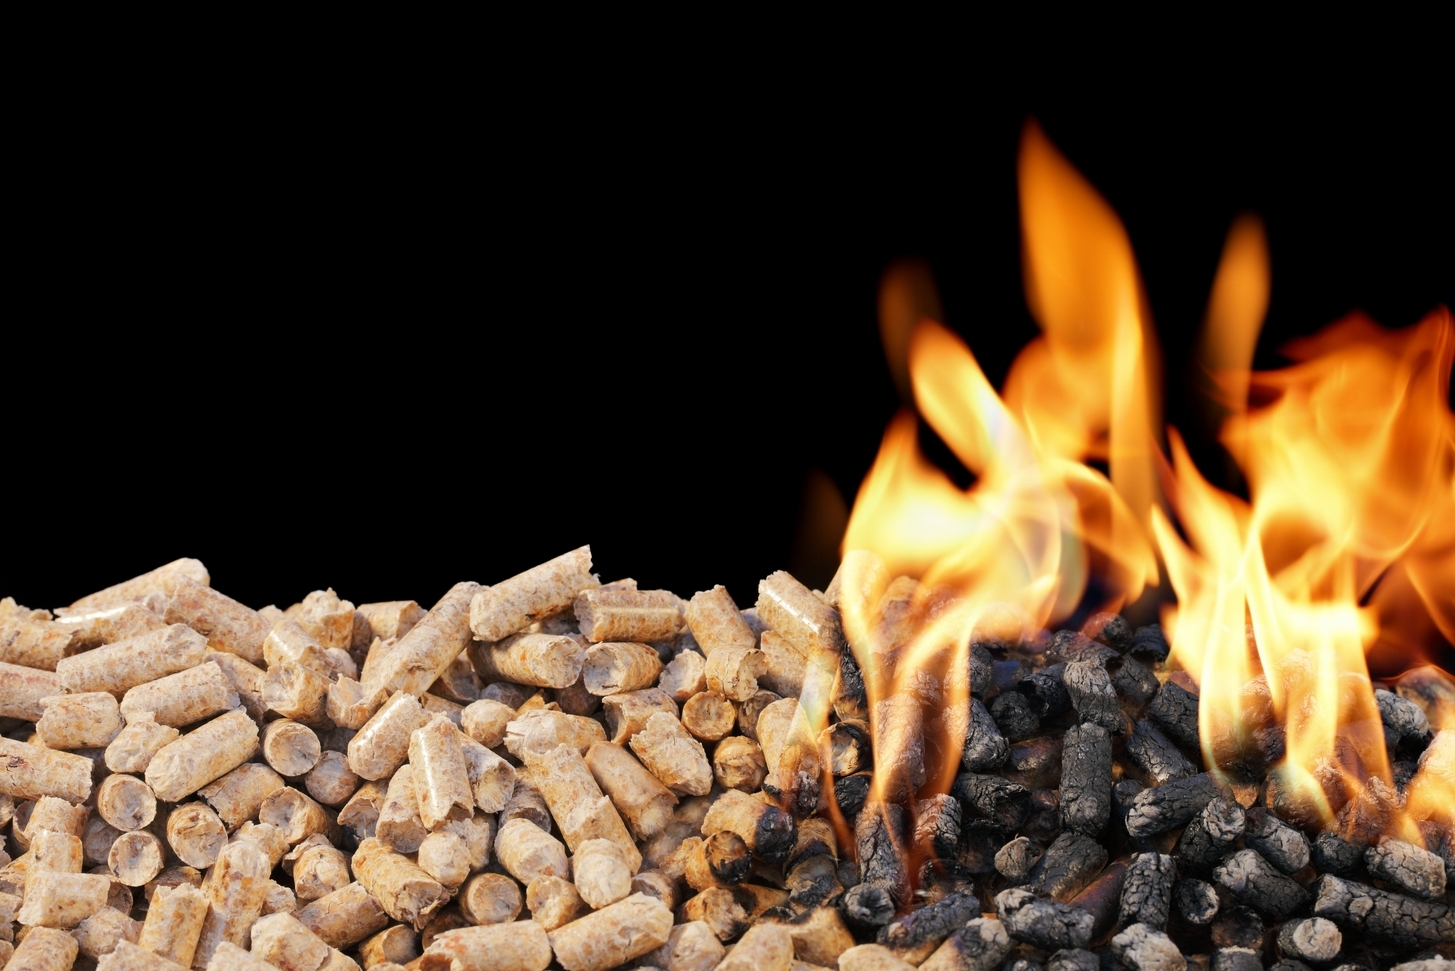 Photo to illustrate article https://www.lkshields.ie/images/uploads/news/Biomass.jpg.